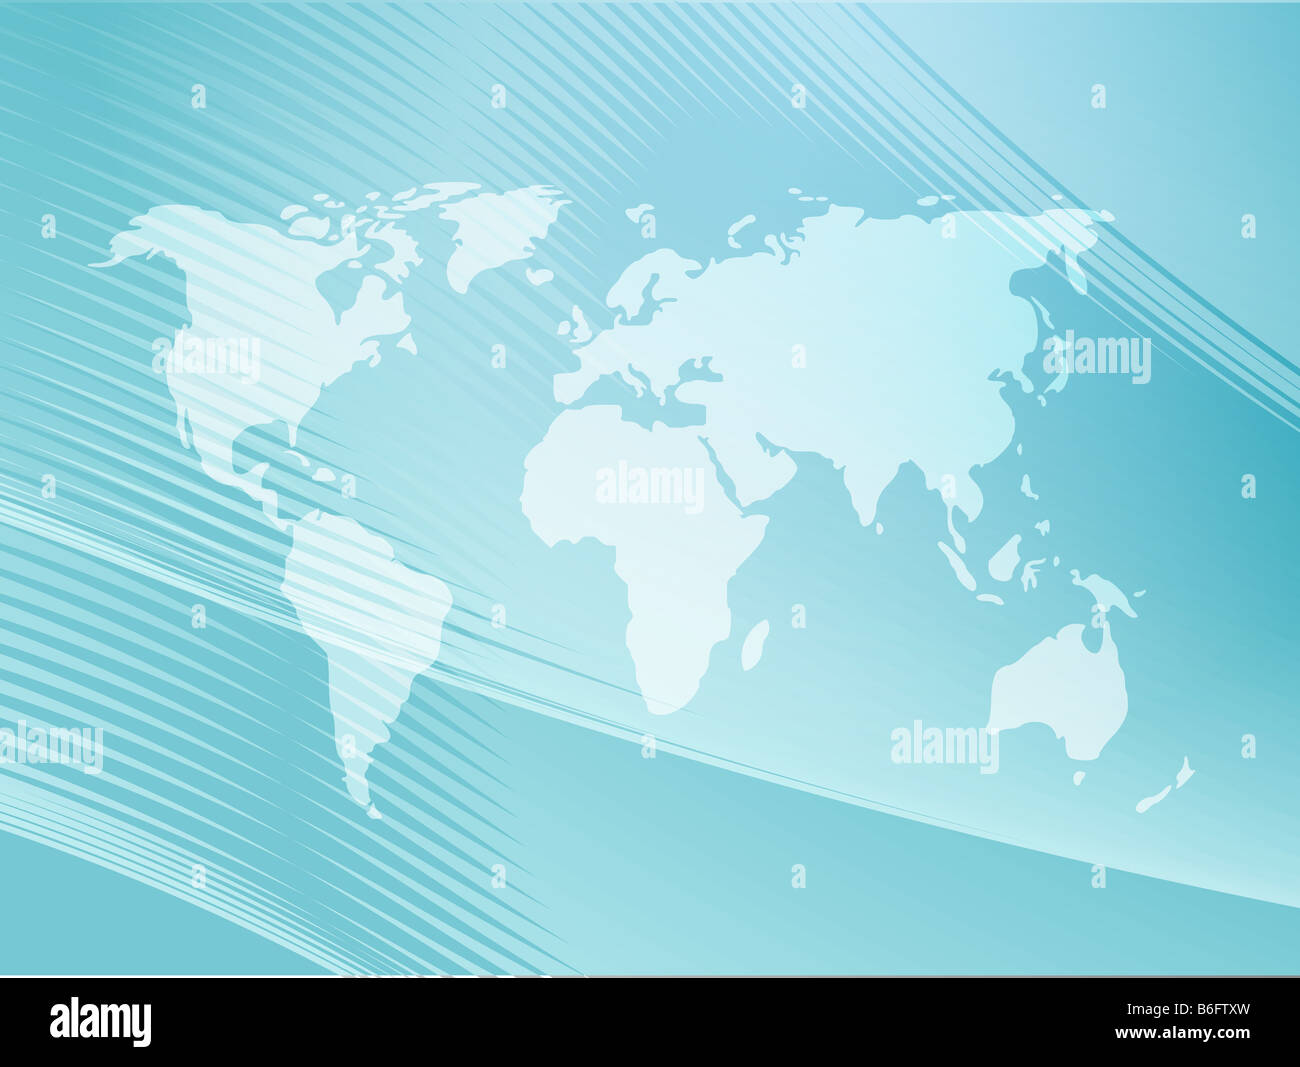 Map of the world illustration with abstract curved lines